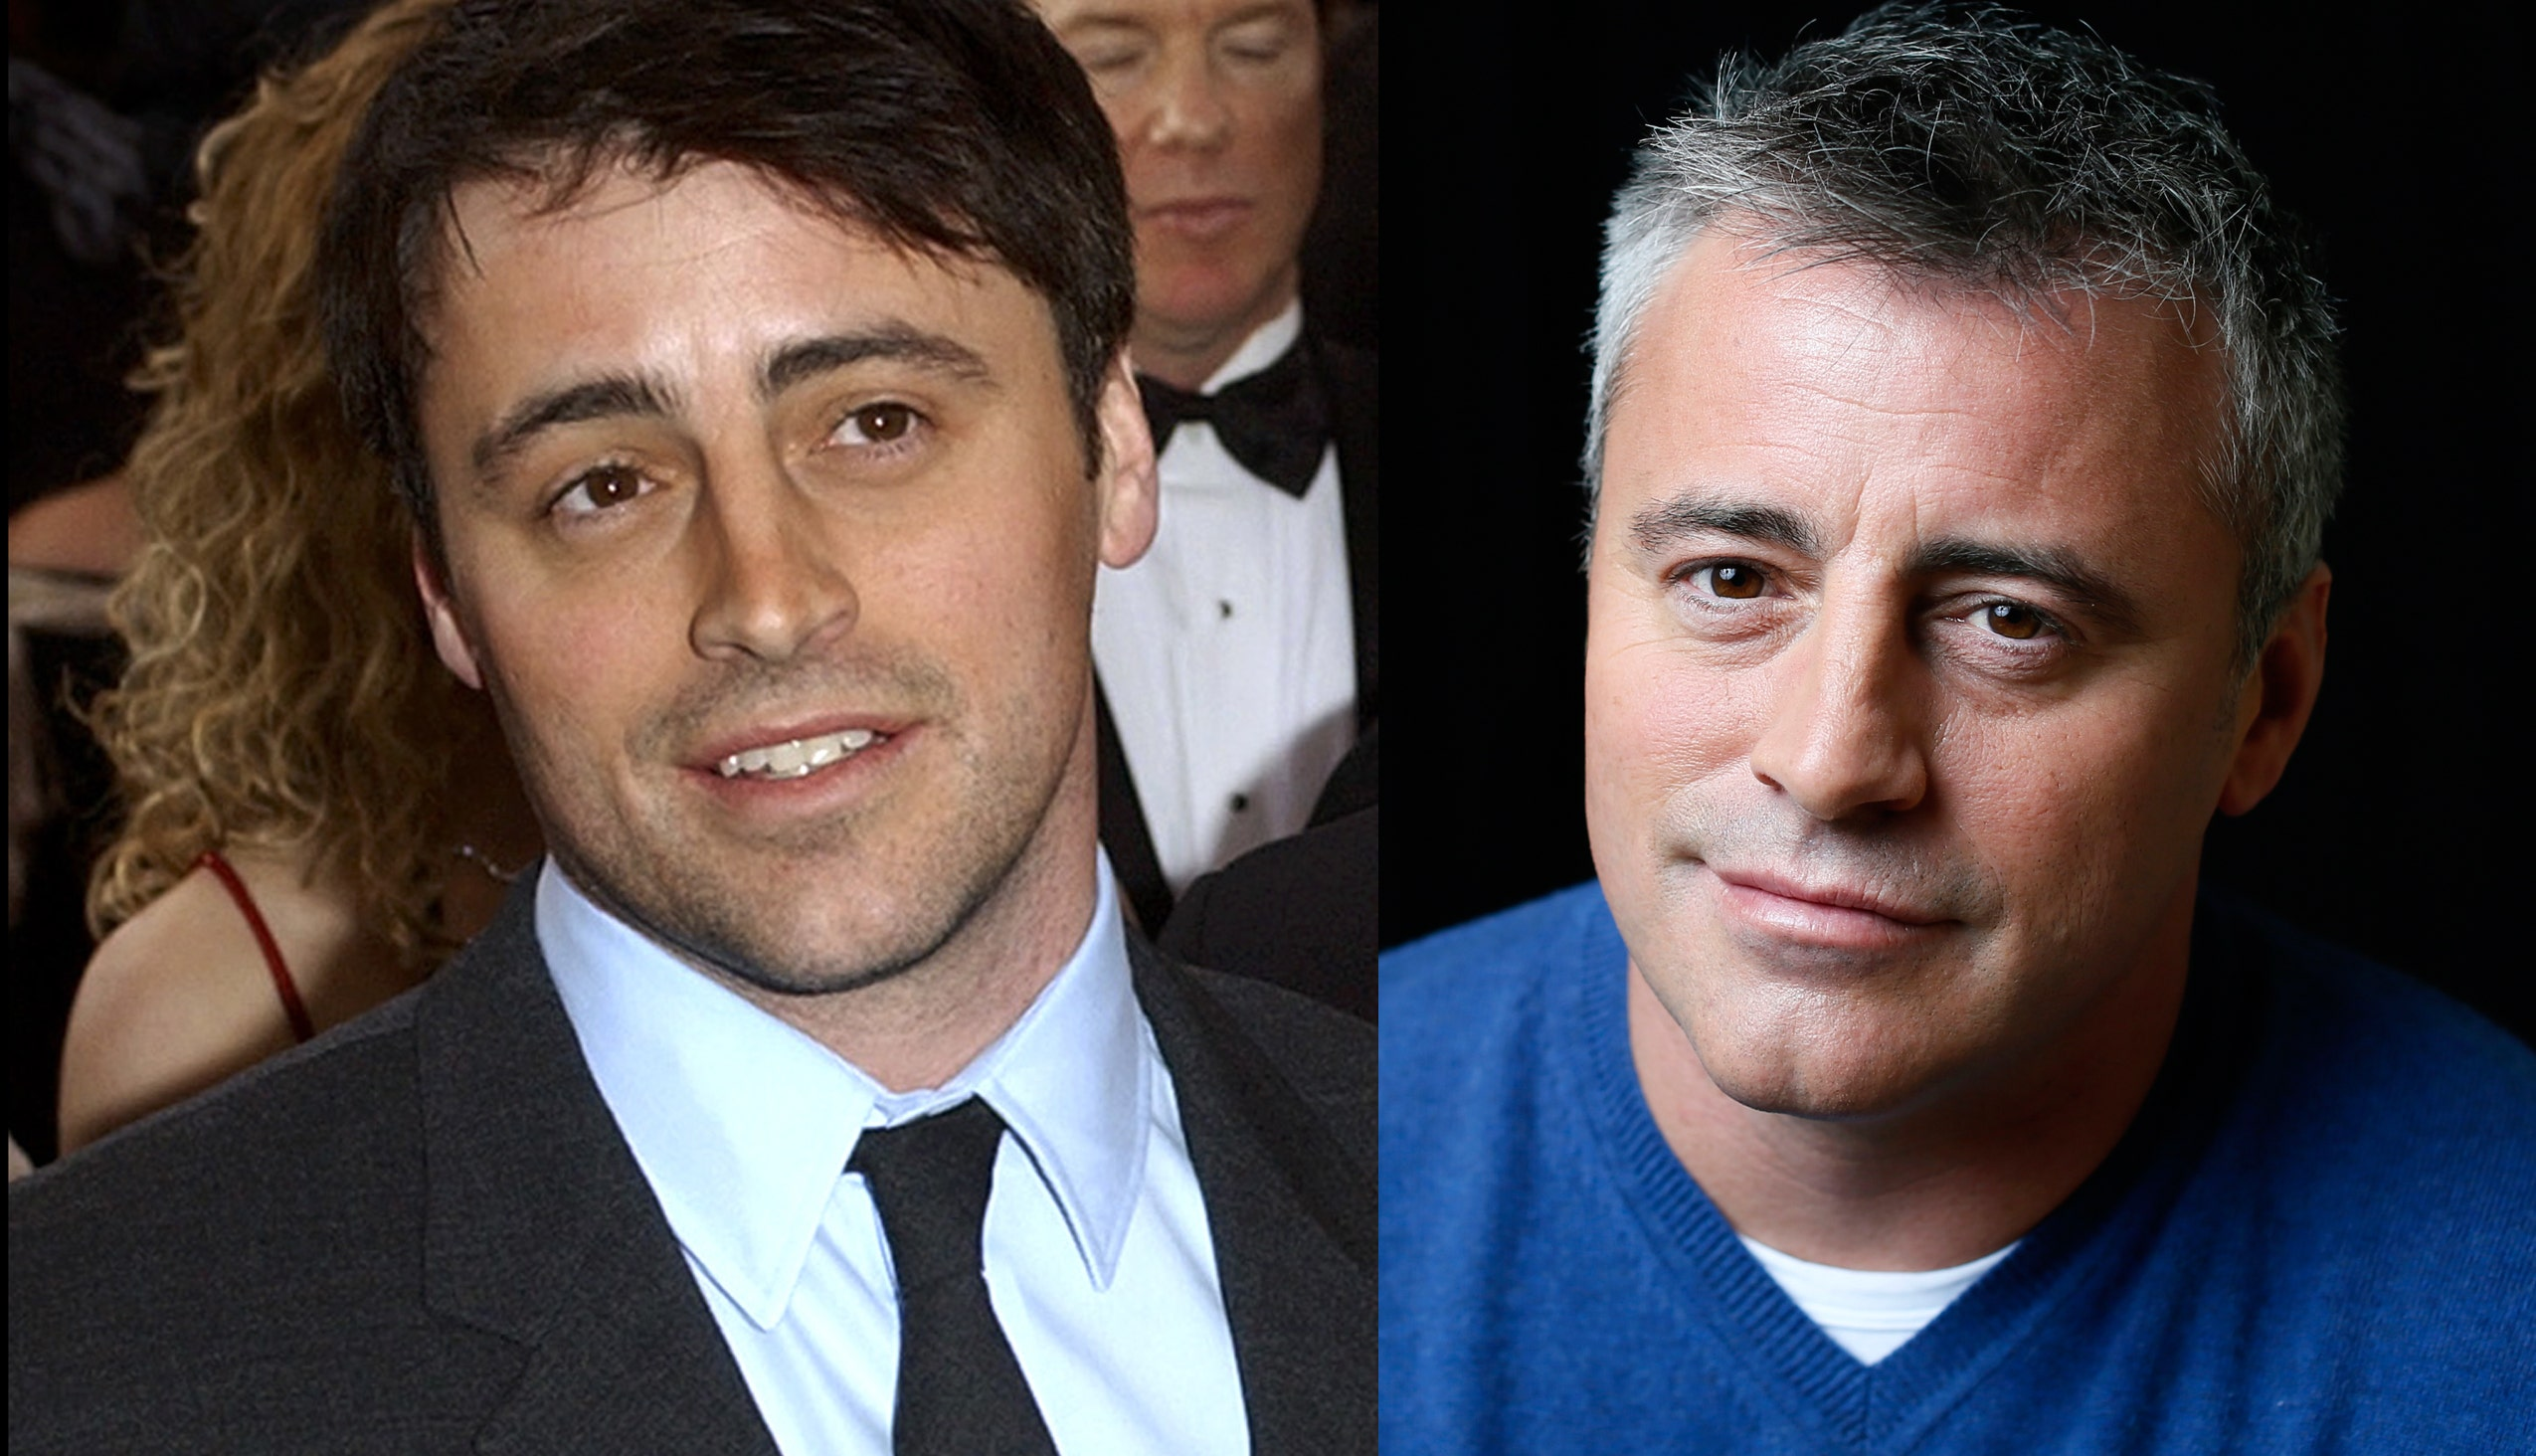 Friends Then And Now ThenNow The cast of